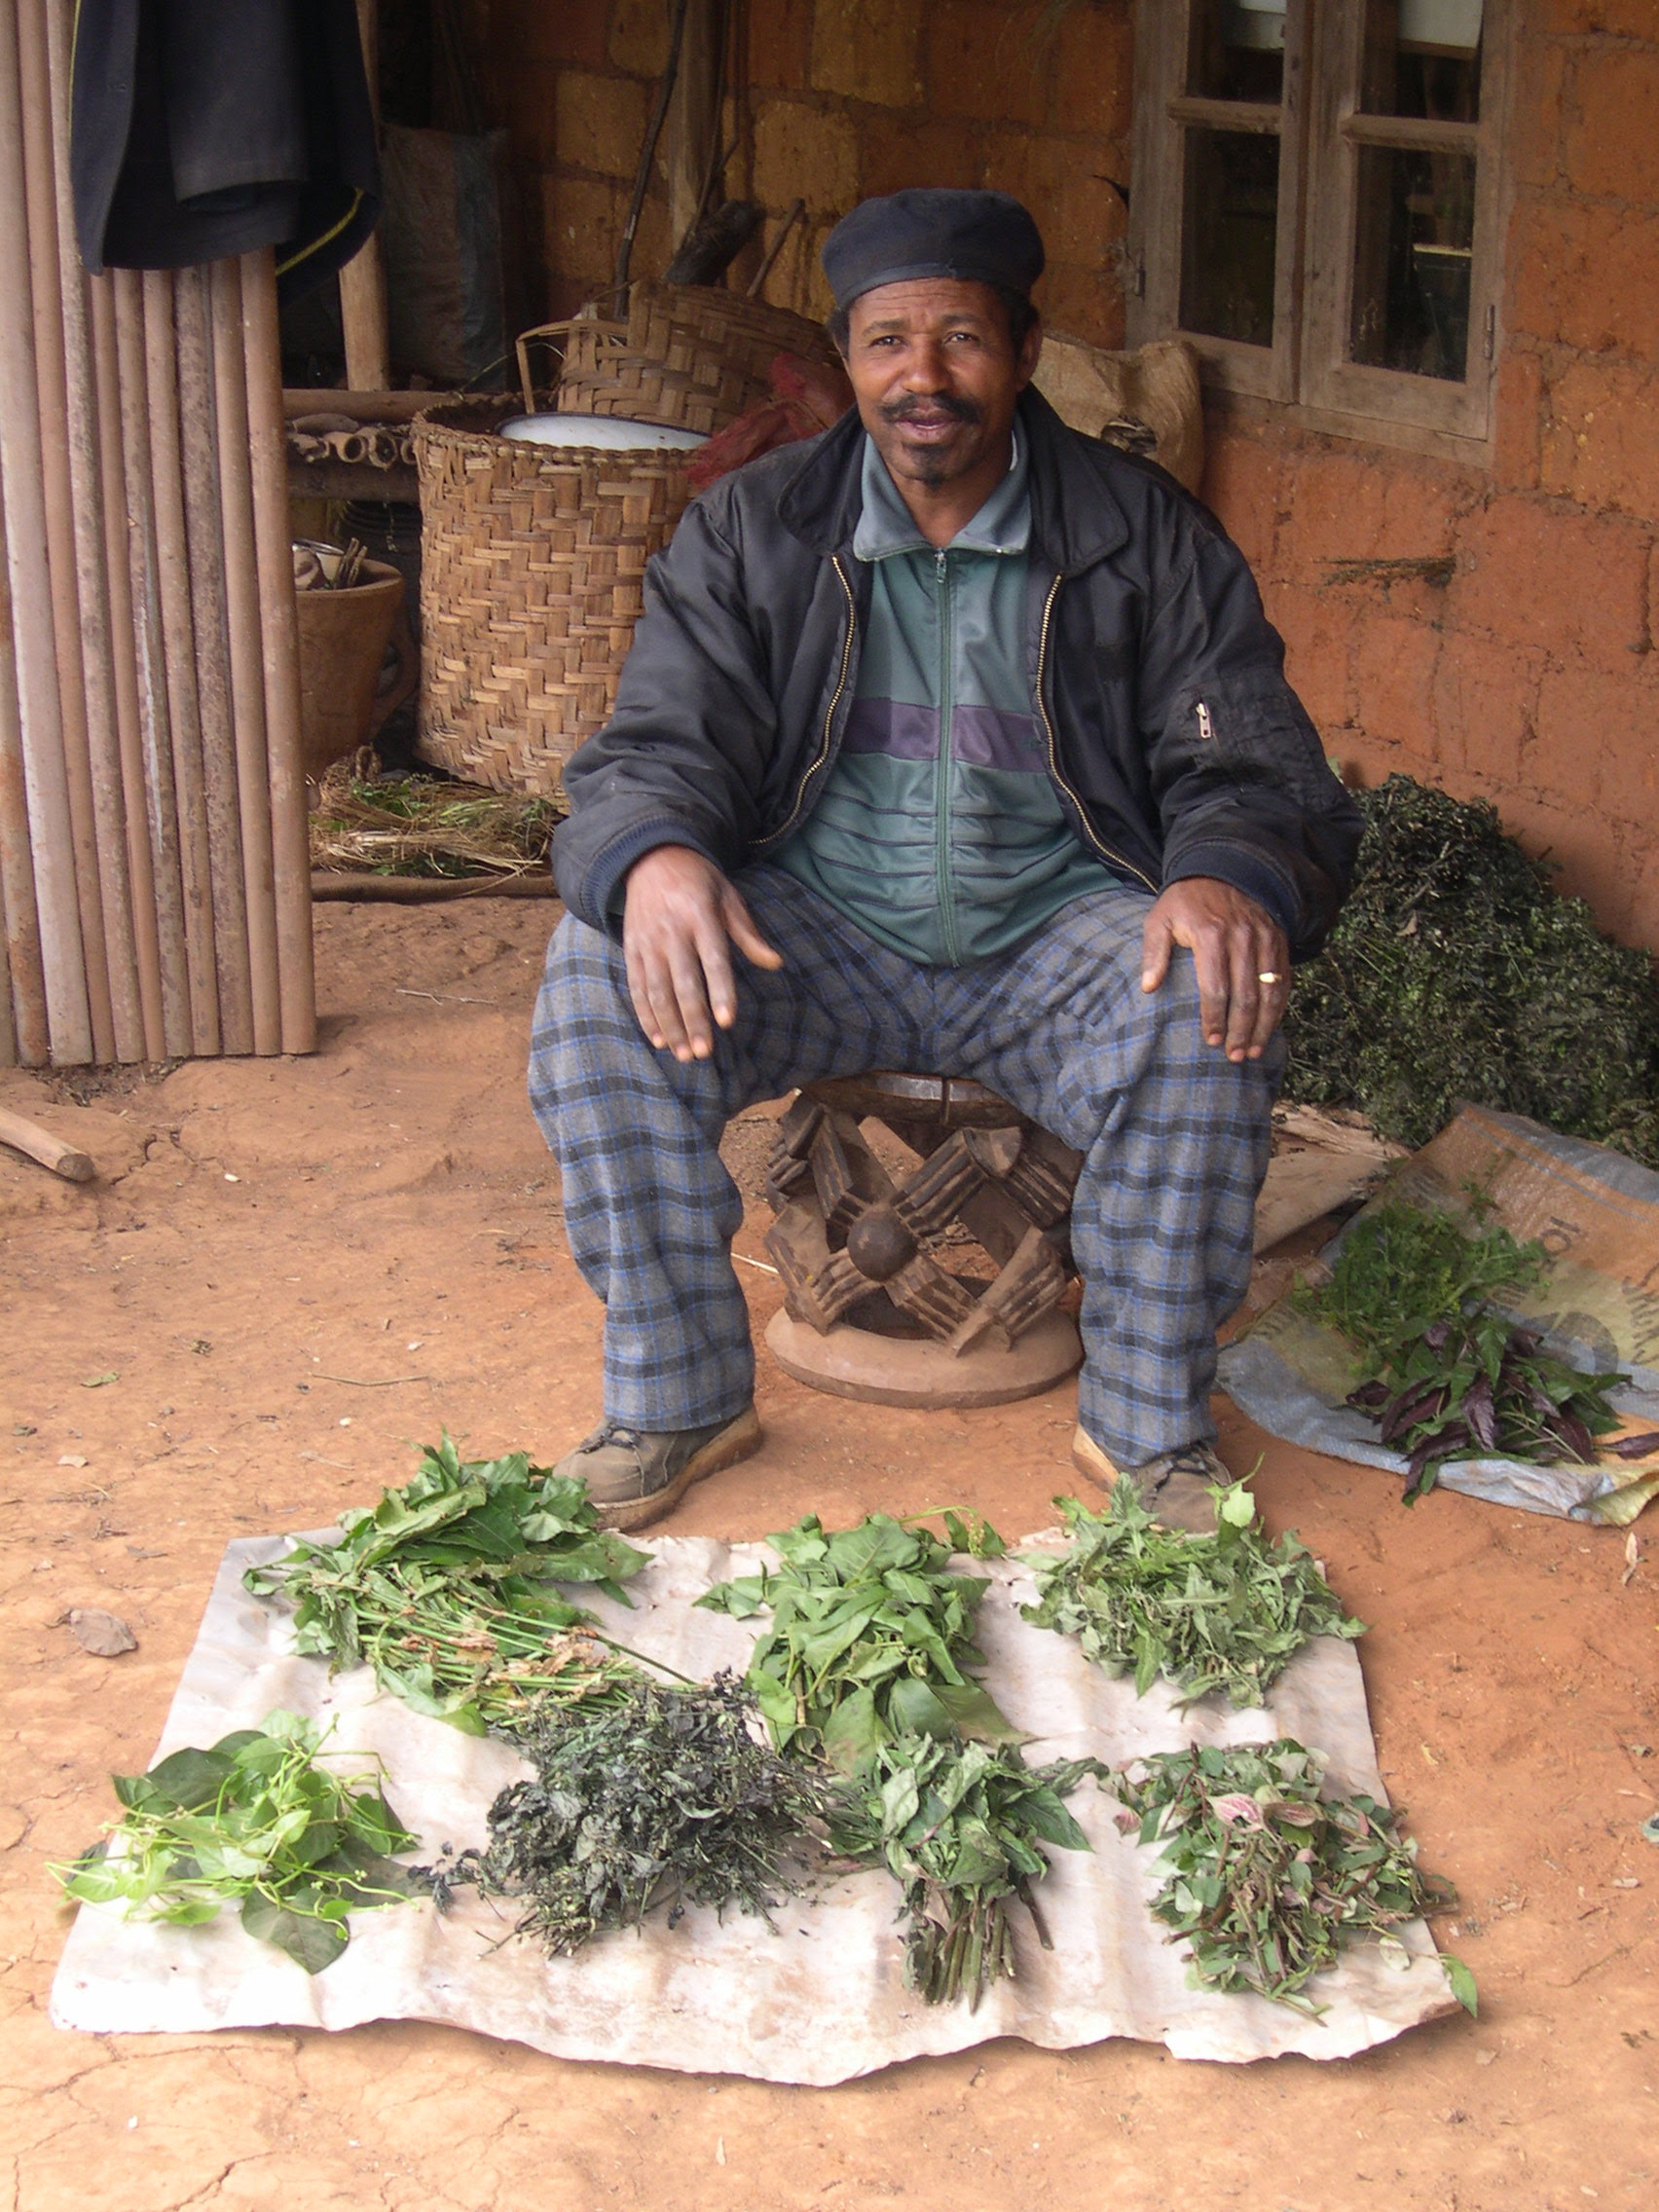 Traditional doctor, David Nchinda, is shown here with a fresh harvest of medicinal plants